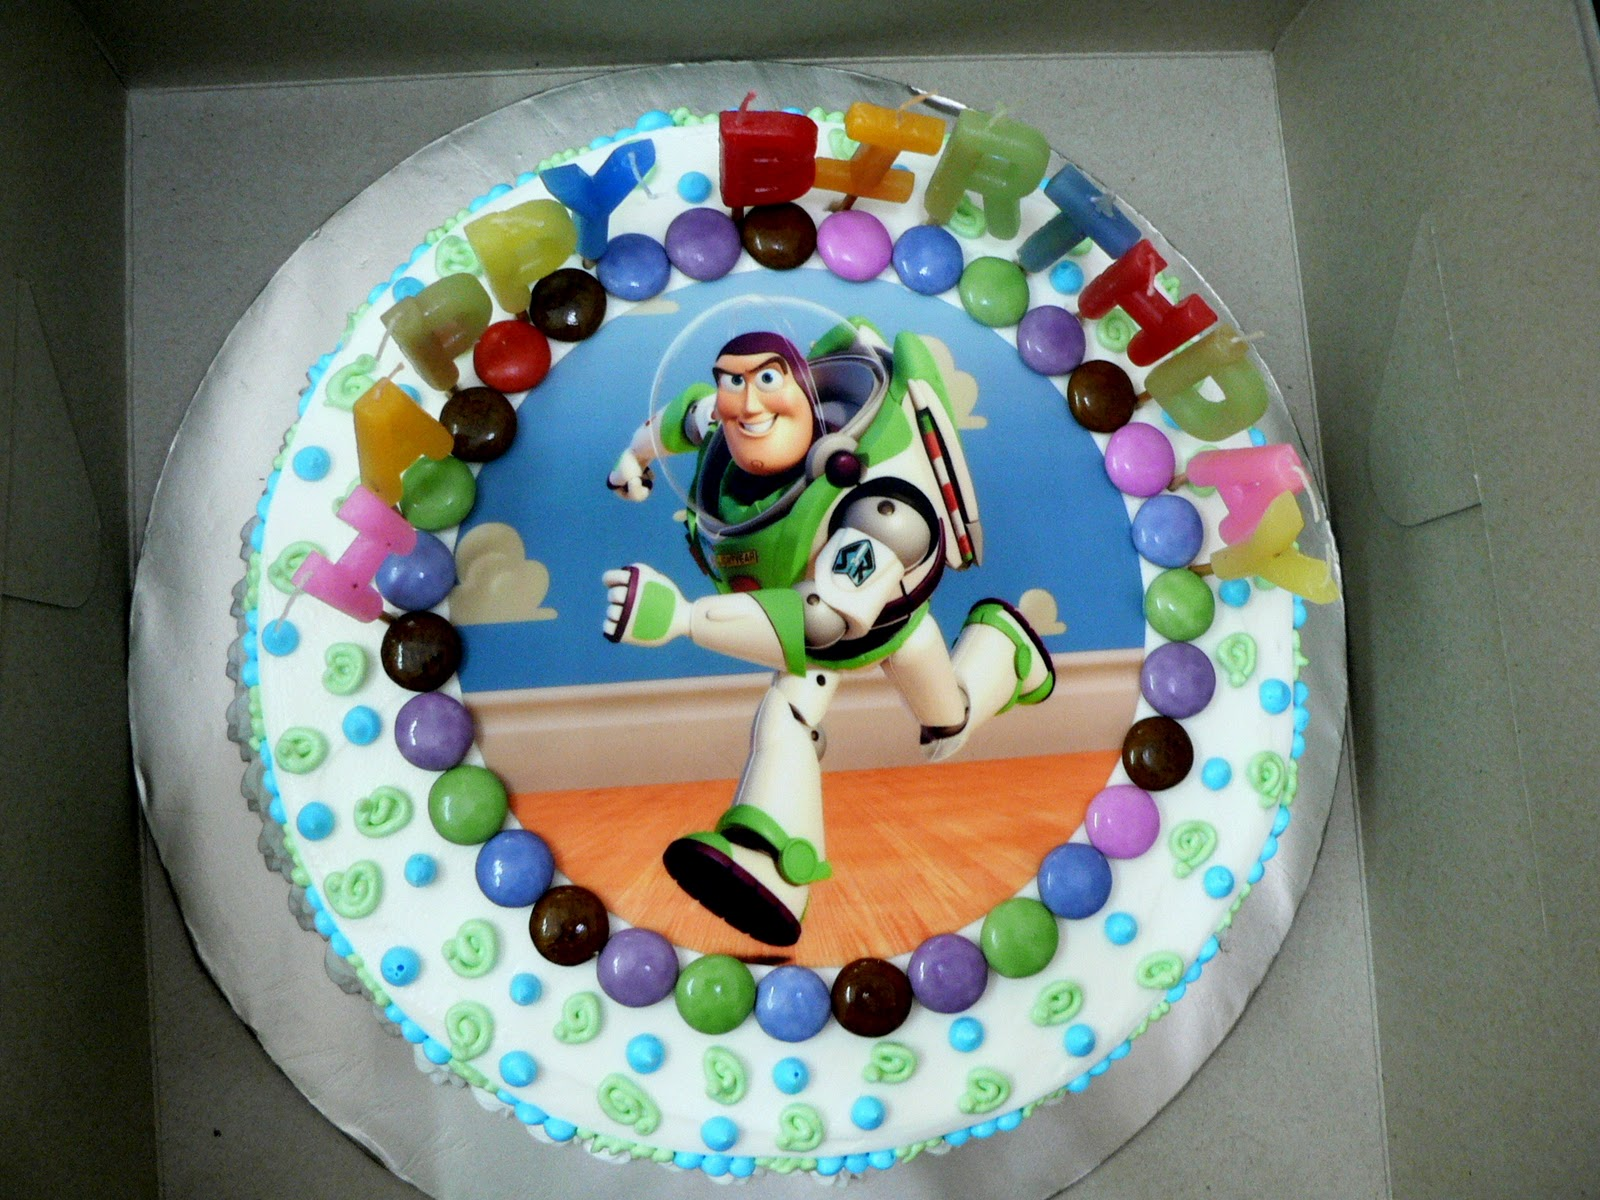 Cake Images With Name Irfan : Shugarholic: birthday cakes with toy story theme